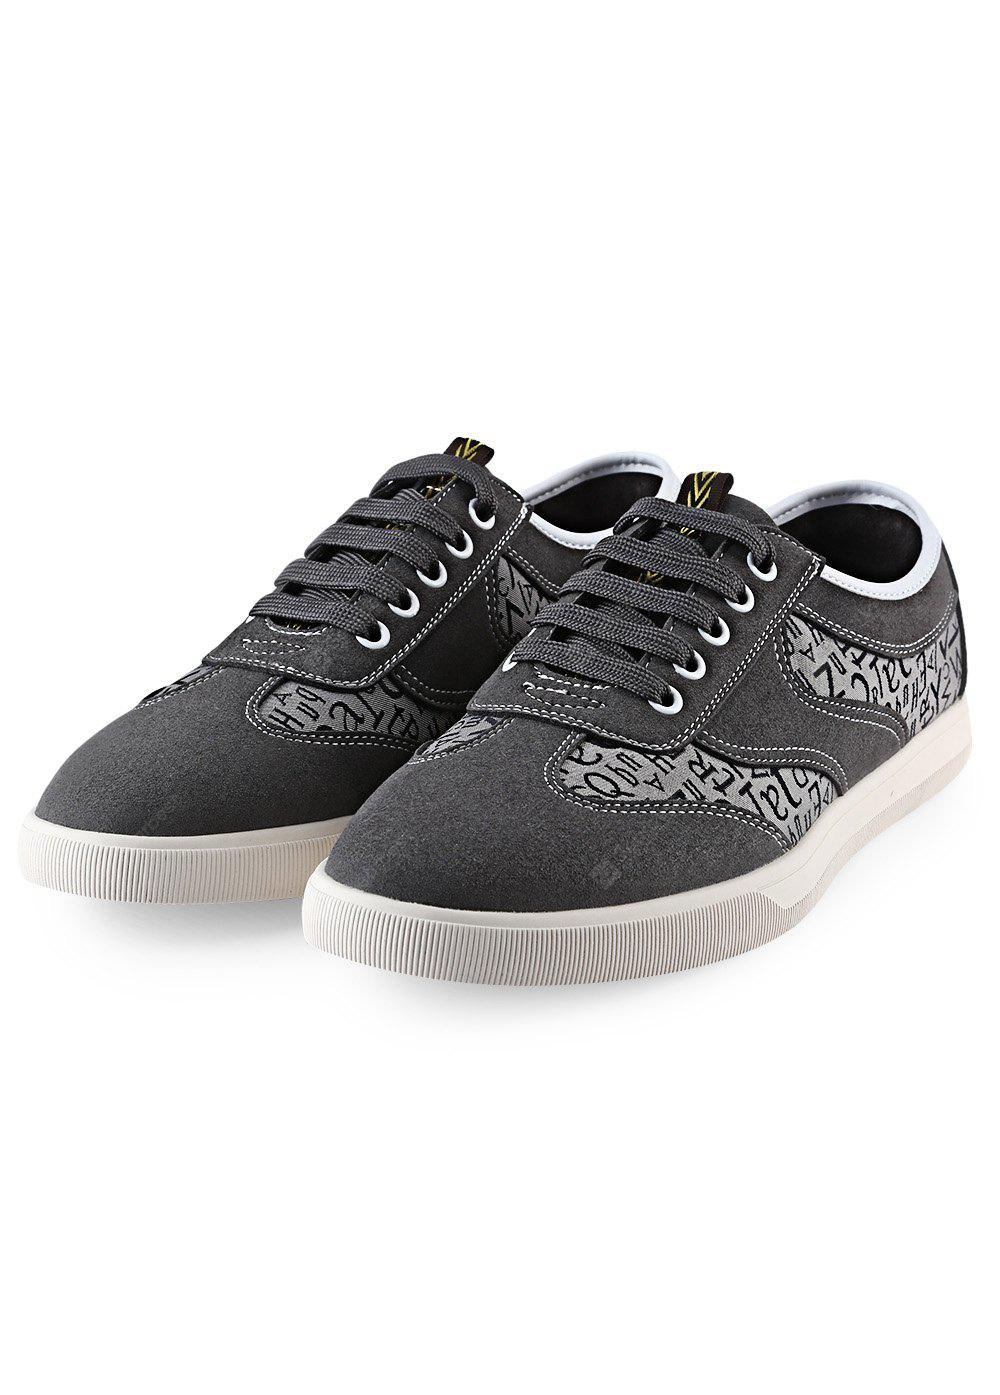 GRAY HLA Letter Print Nubuck Male Casual Shoes